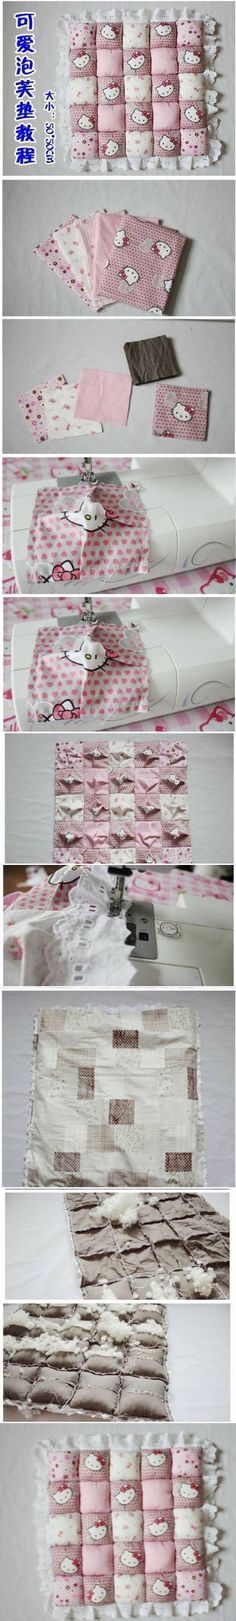 DIY Cute Little Puff Cushions I don't care for hello kitty but this is a great idea Fabric Crafts, Sewing Crafts, Sewing Projects, Diy Projects, Sewing For Kids, Baby Sewing, Baby Crafts, Diy And Crafts, Diy Pillows